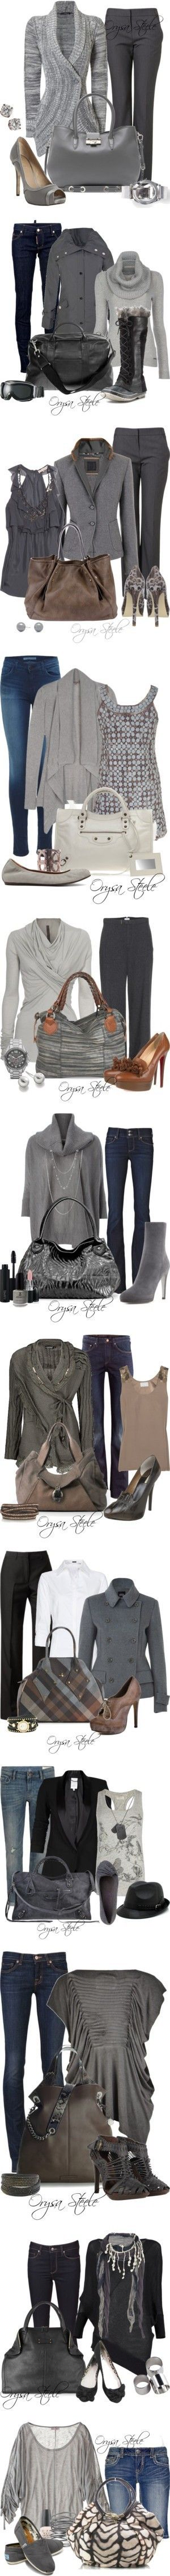 ✪✪✪ Stay up to date with all the latest fashion tips, discounts and the best places to shop online here => http://womensstyleguide.com ✪✪✪